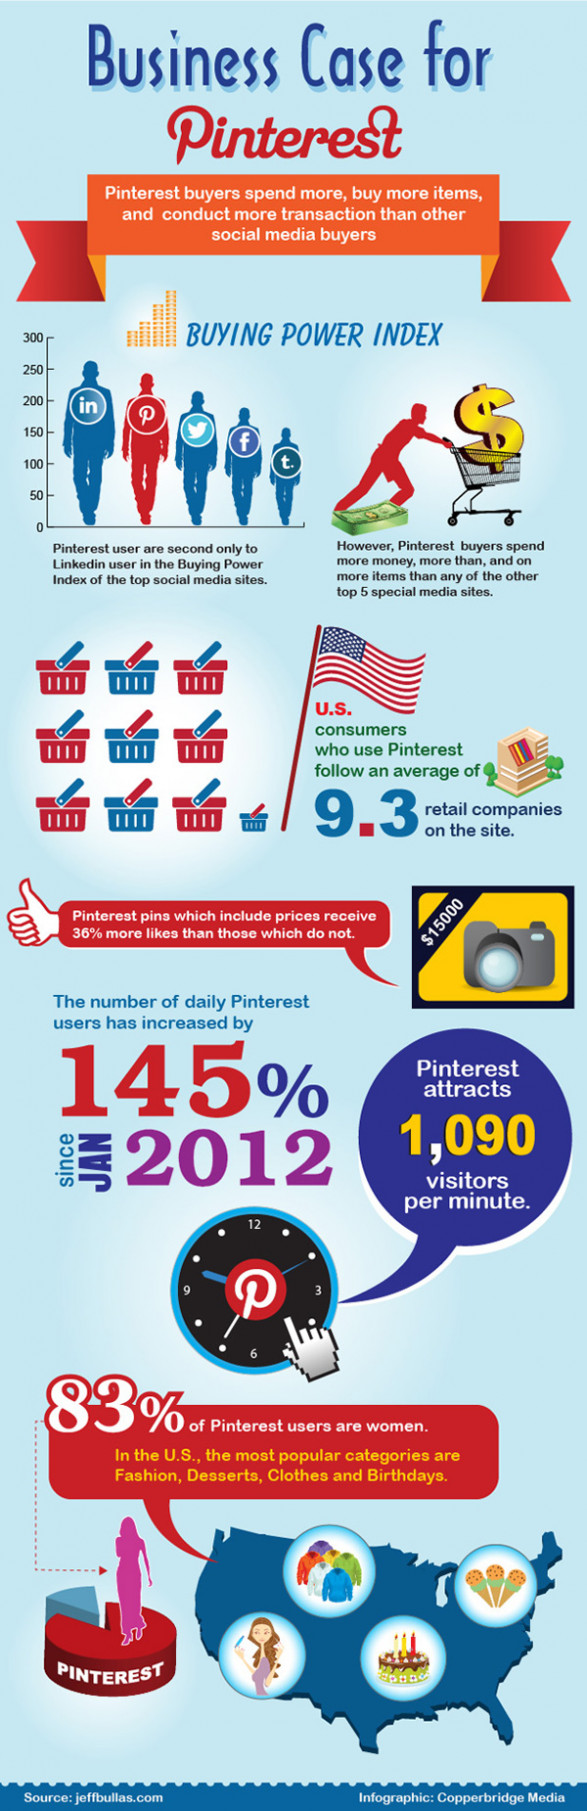 Business case for Pinterest: Fact or fluff?